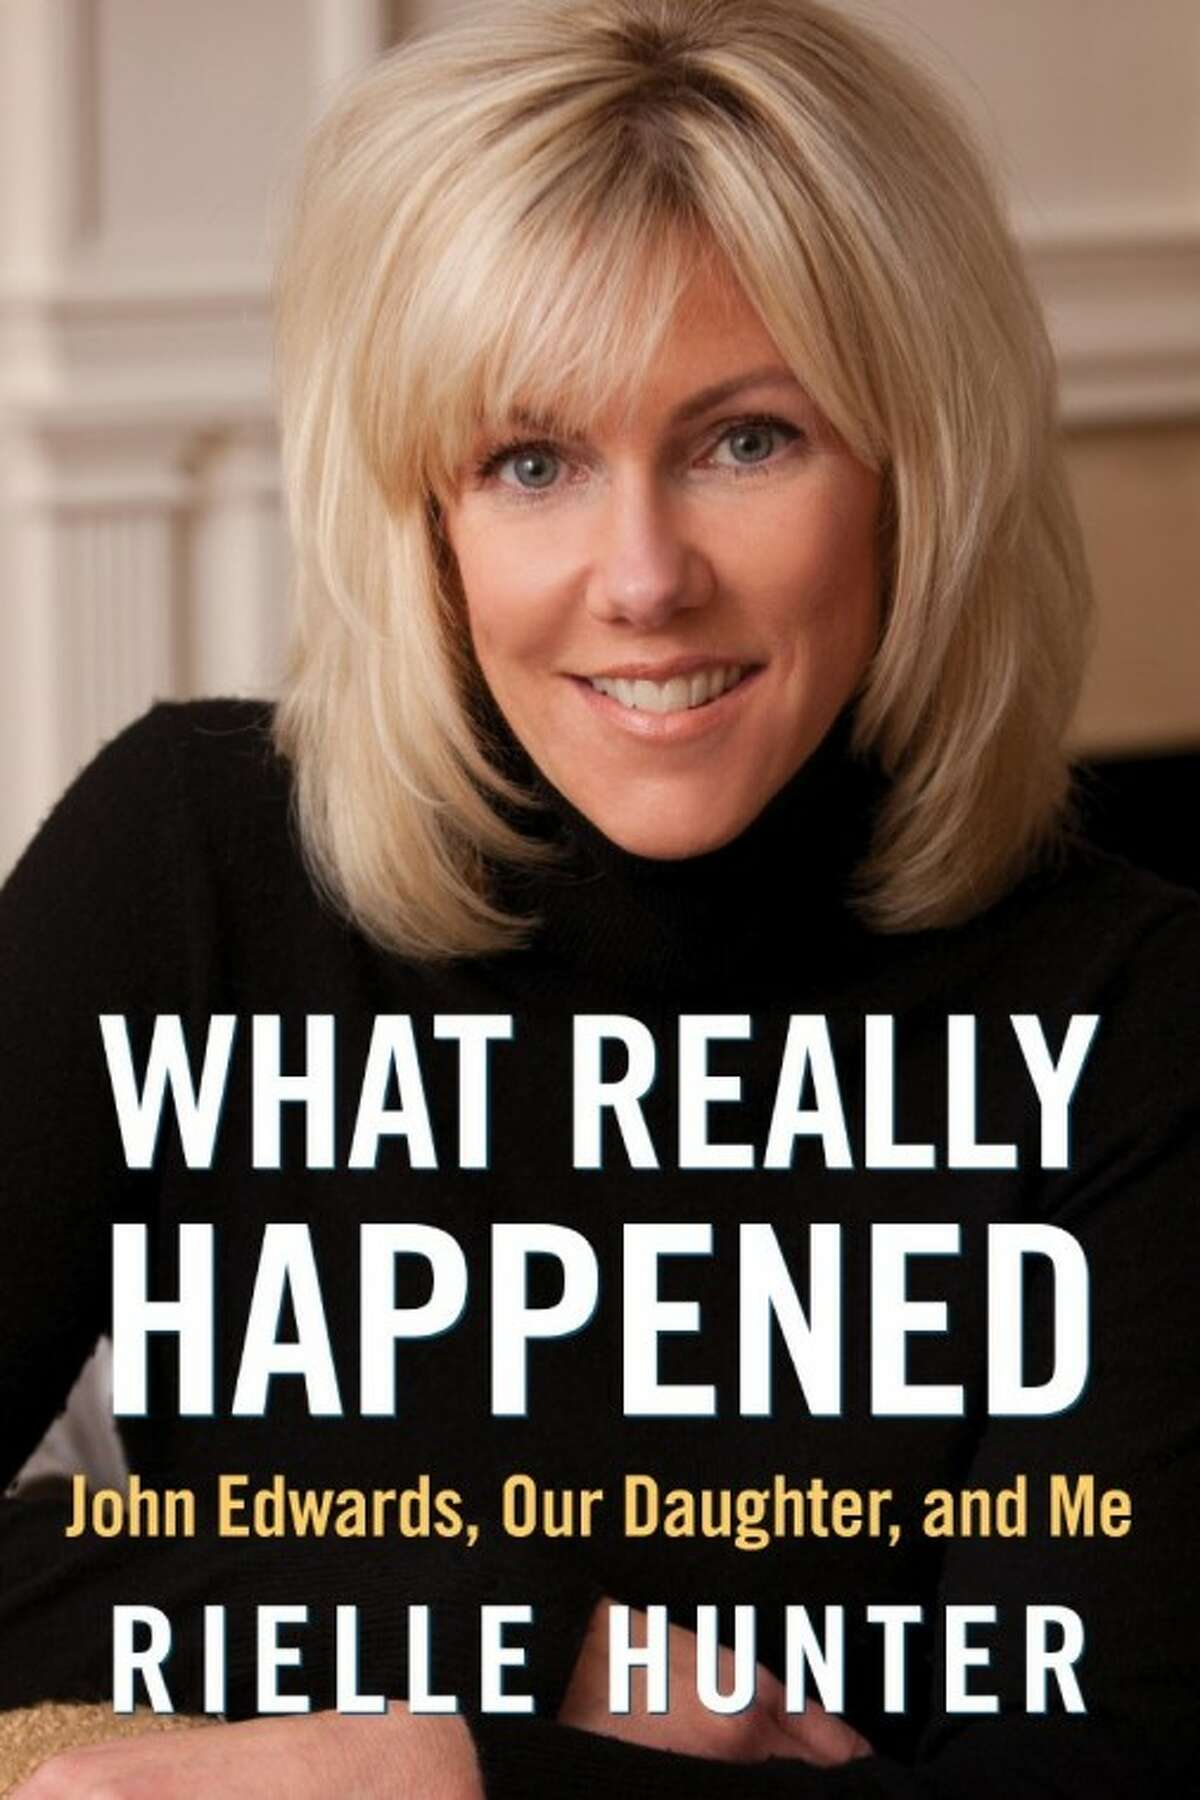 """This photo provided by RMT PR Management shows the cover of """"What Really Happened,"""" a memoir about Rielle Hunter, her relationship with former presidential candidate and Sen. John Edwards and their daughter. The memoir is set to be released June 26. Edwards and Hunter had an affair while the Democrat was running for the White House in 2008 and have a daughter together, Frances Quinn Hunter."""